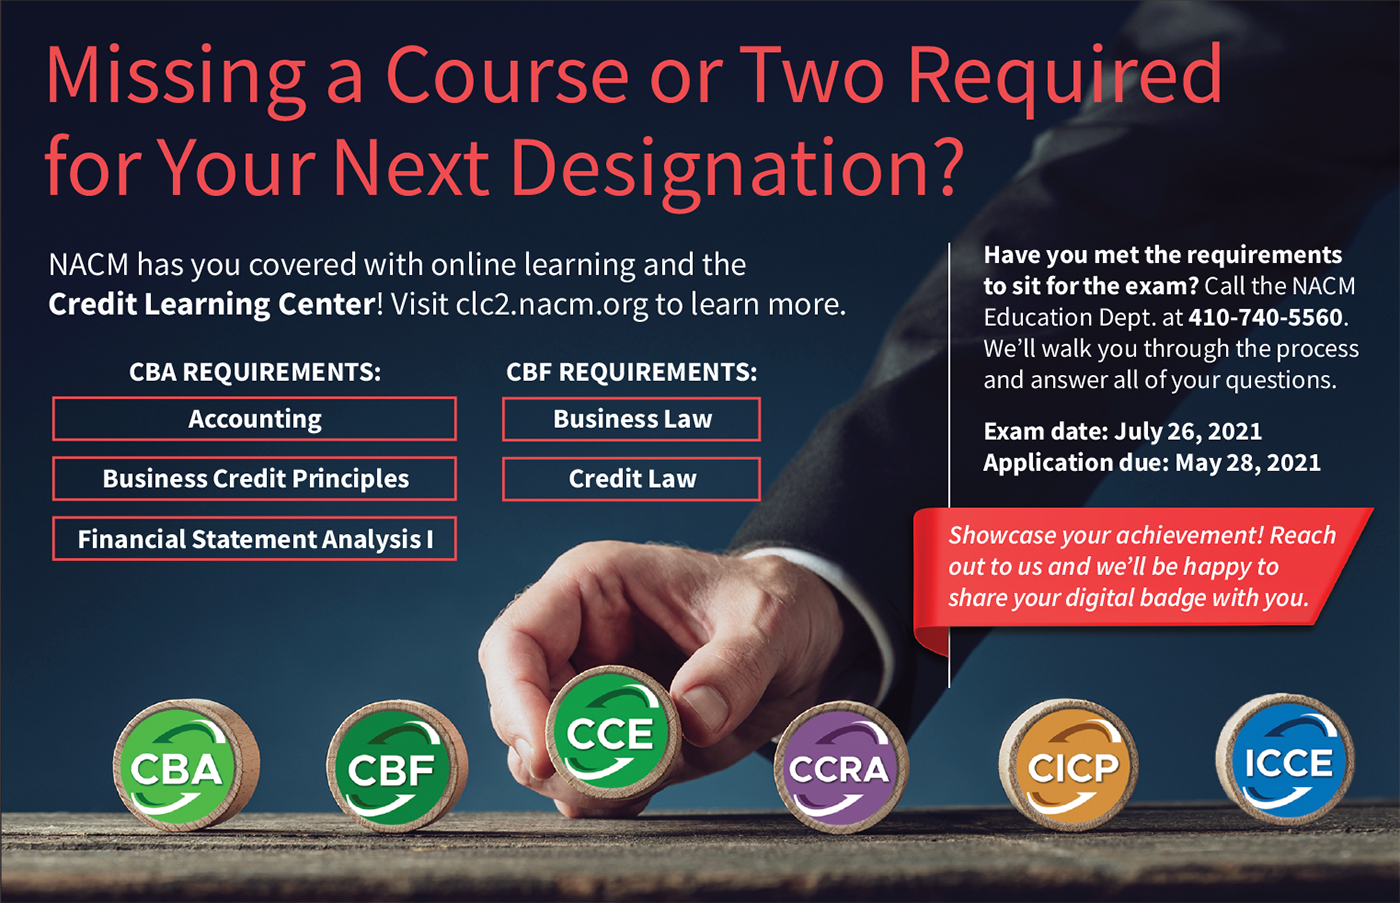 Missing a Course or Two Required for Your Next Designation?